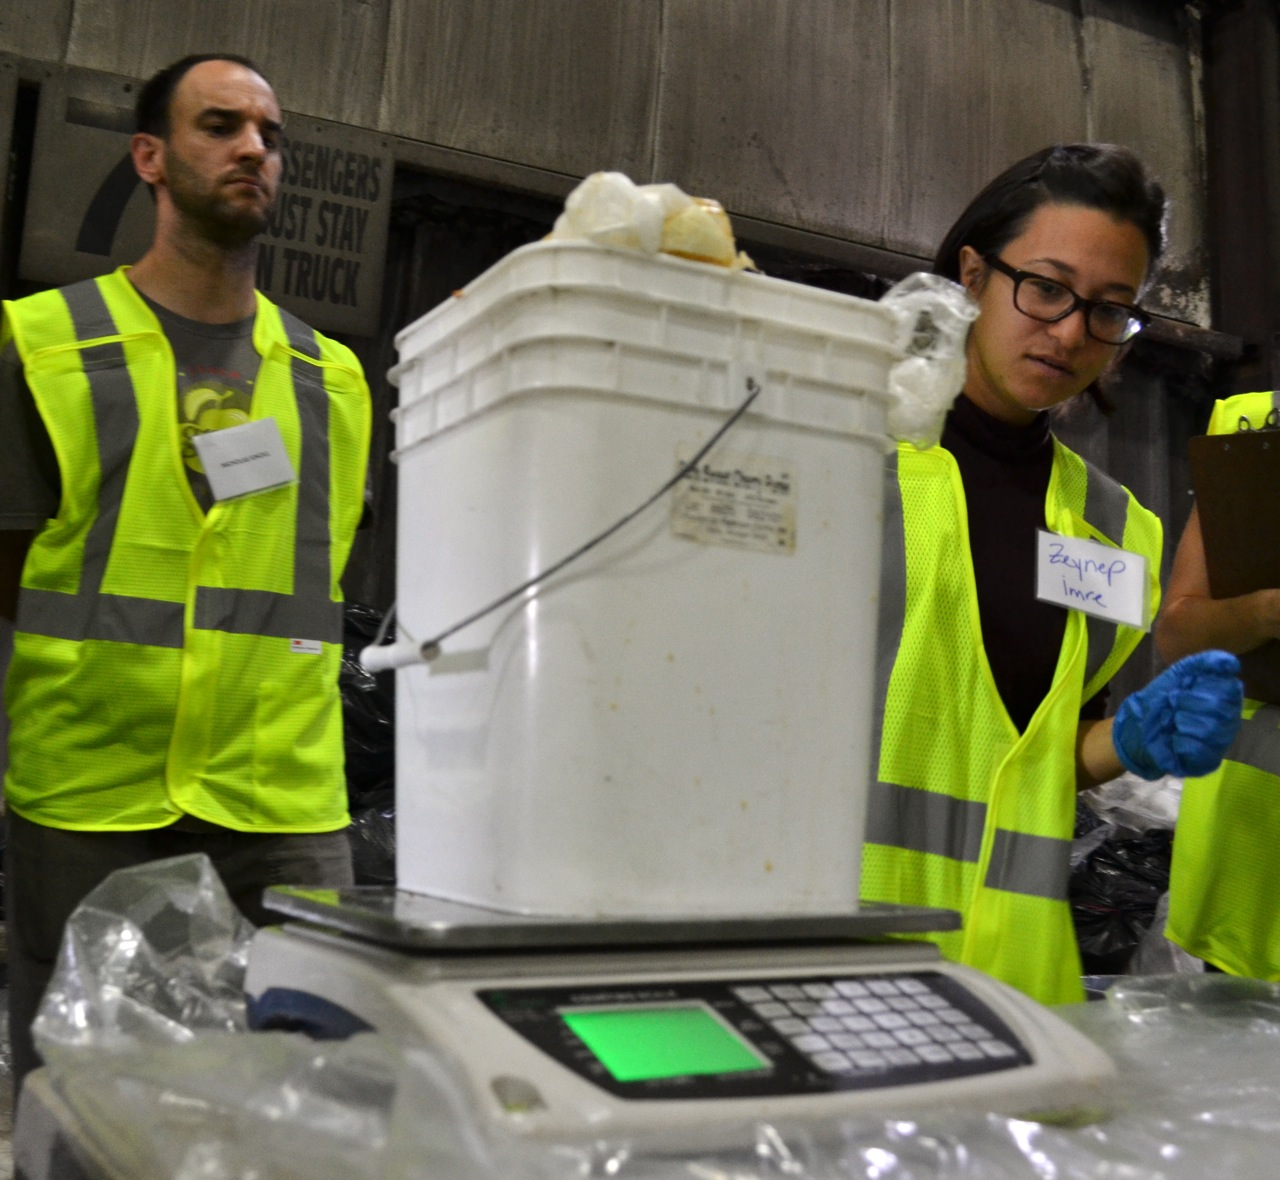 Volunteers weighing food waste during Global Green's Co-Sponsored Waste Sort for NYC's Mayor's Food Waste Challenge.  As a result of the challenge, city restaurants and institutions have already composted 2,500 tons of organic waste.